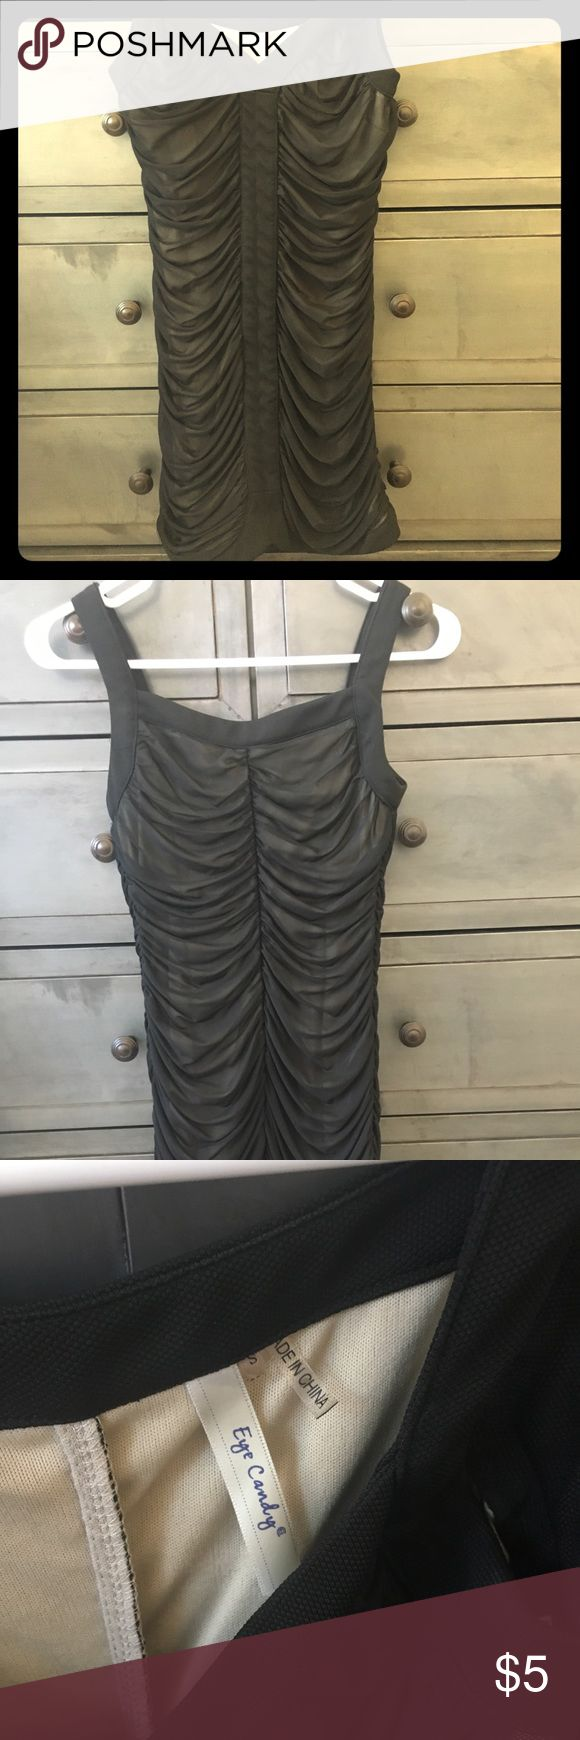 Classic little black dress-perfect for night out Nude dress with black sheer overlay - size small - worn only twice Forever 21 Dresses Mini